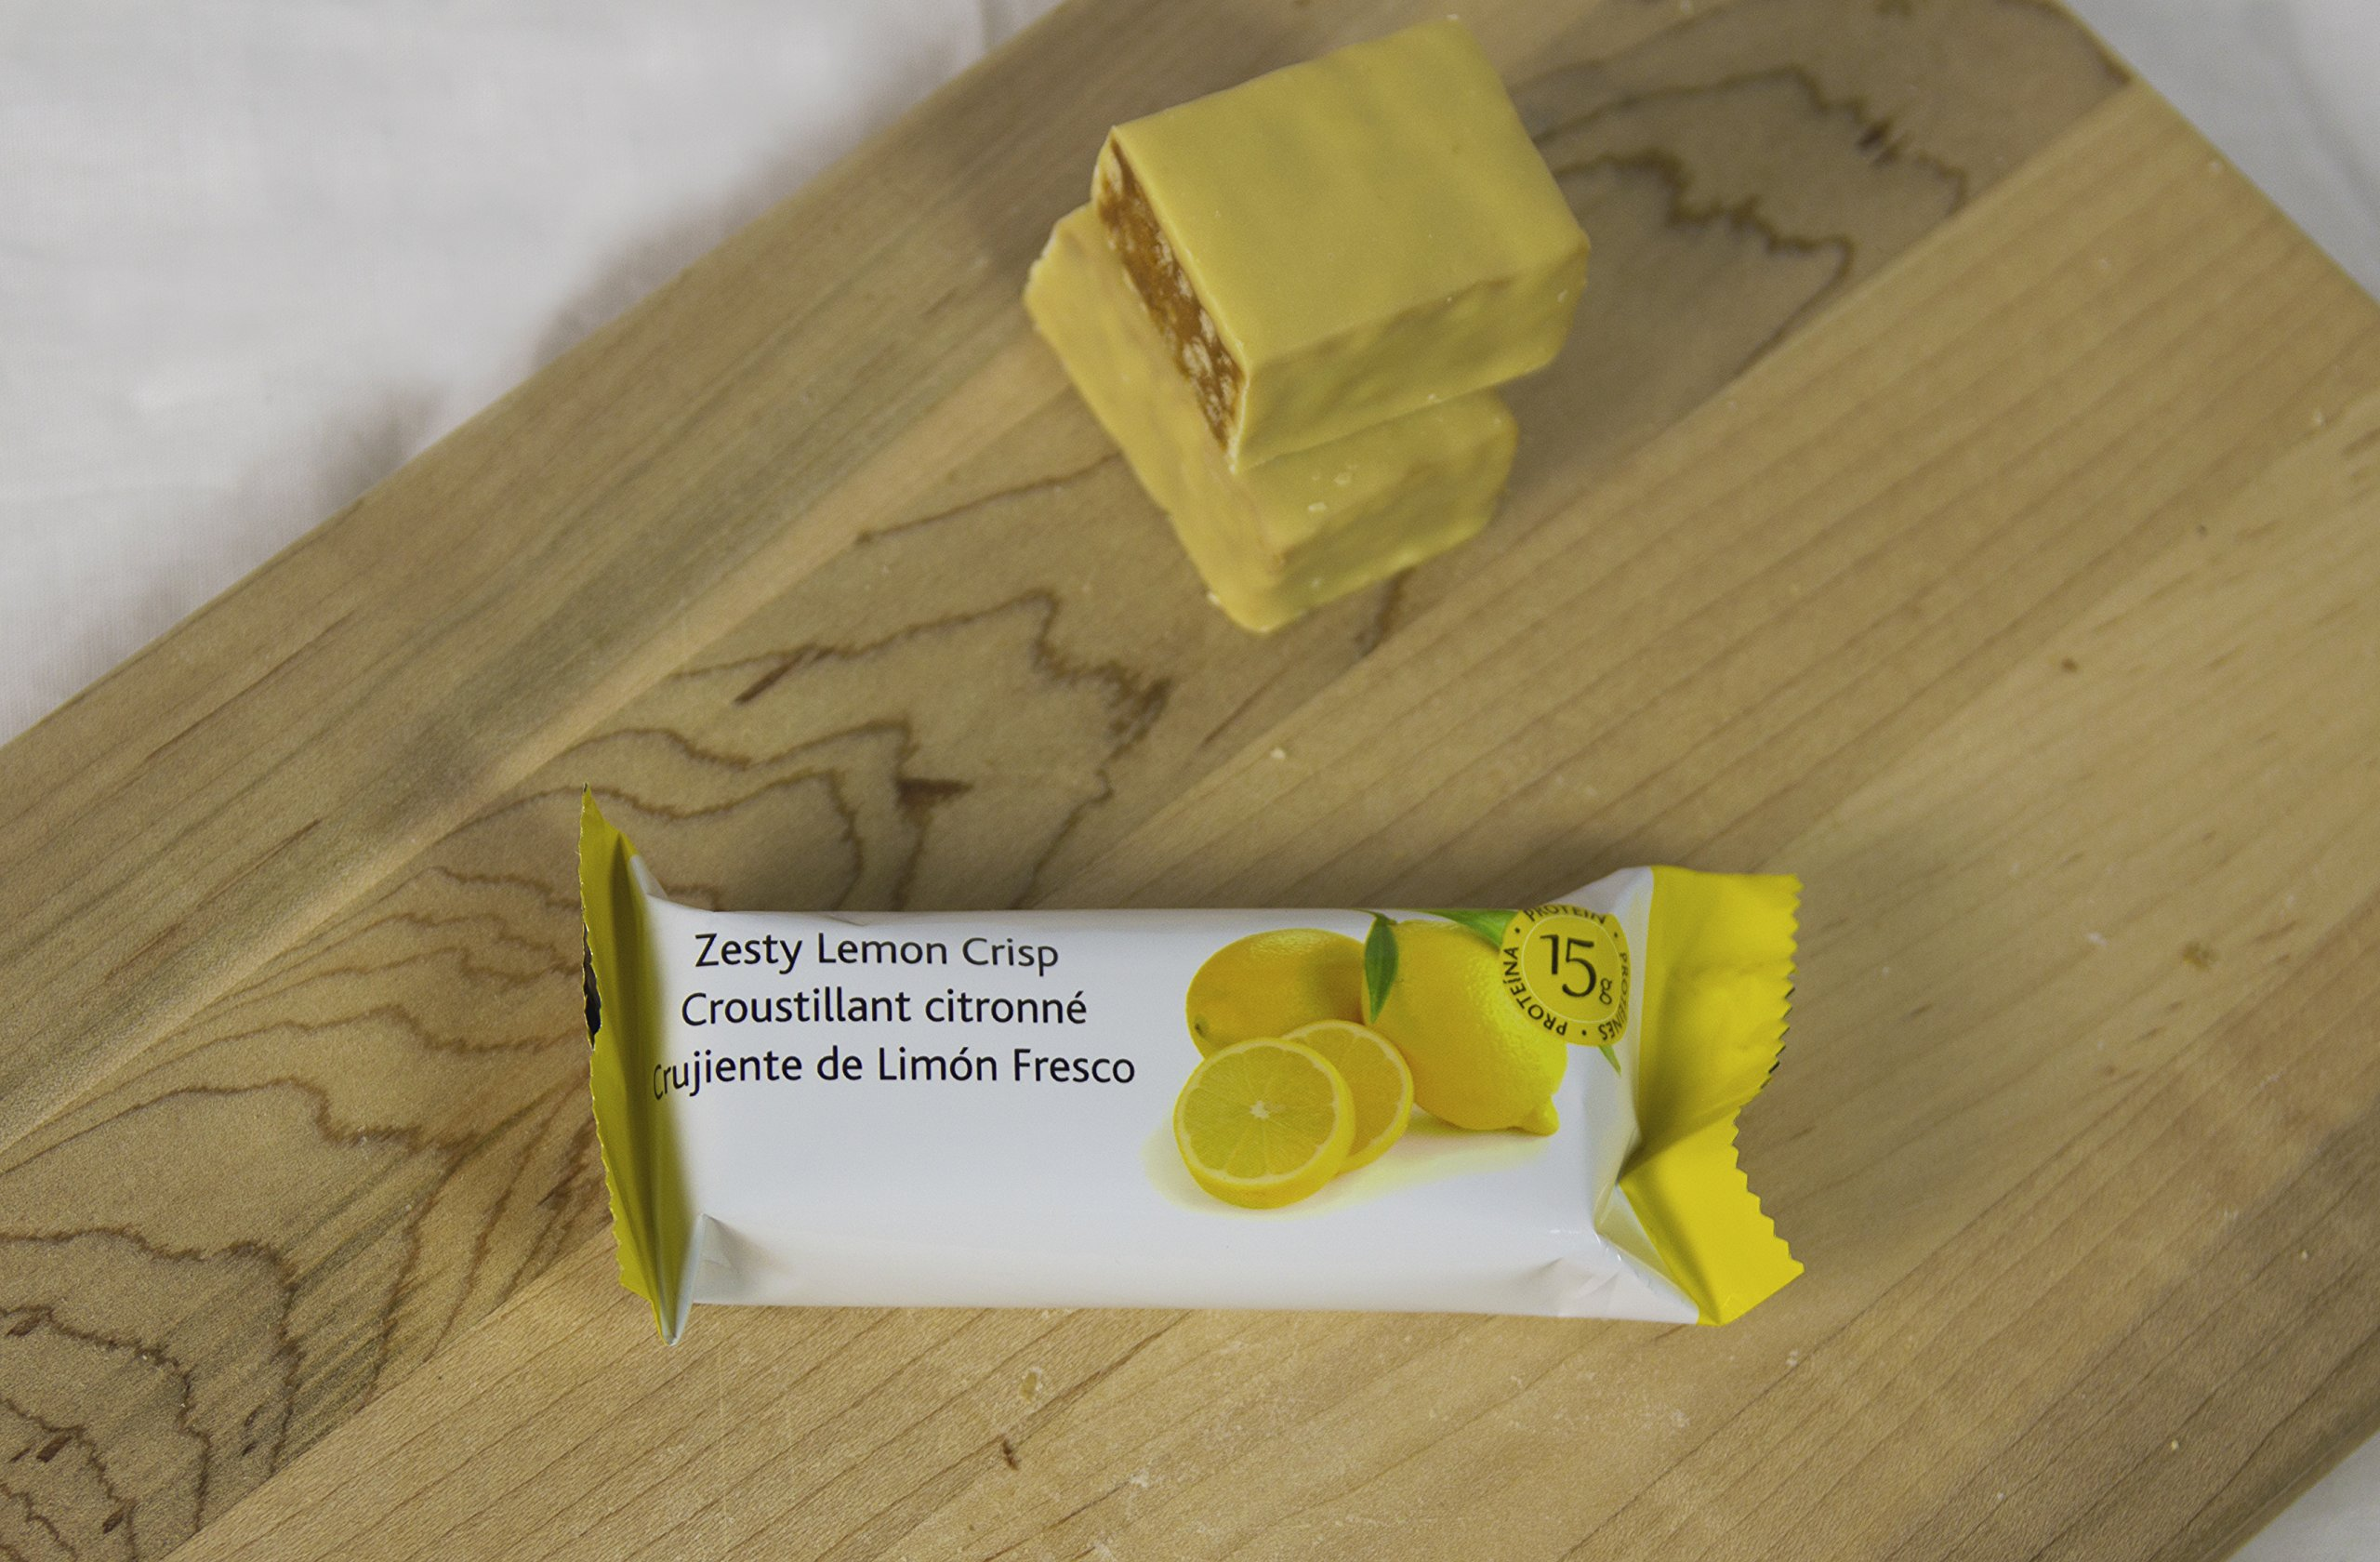 ThinWorks Zesty Lemon Crisp Low Carb Protein Bars by ThinWorks